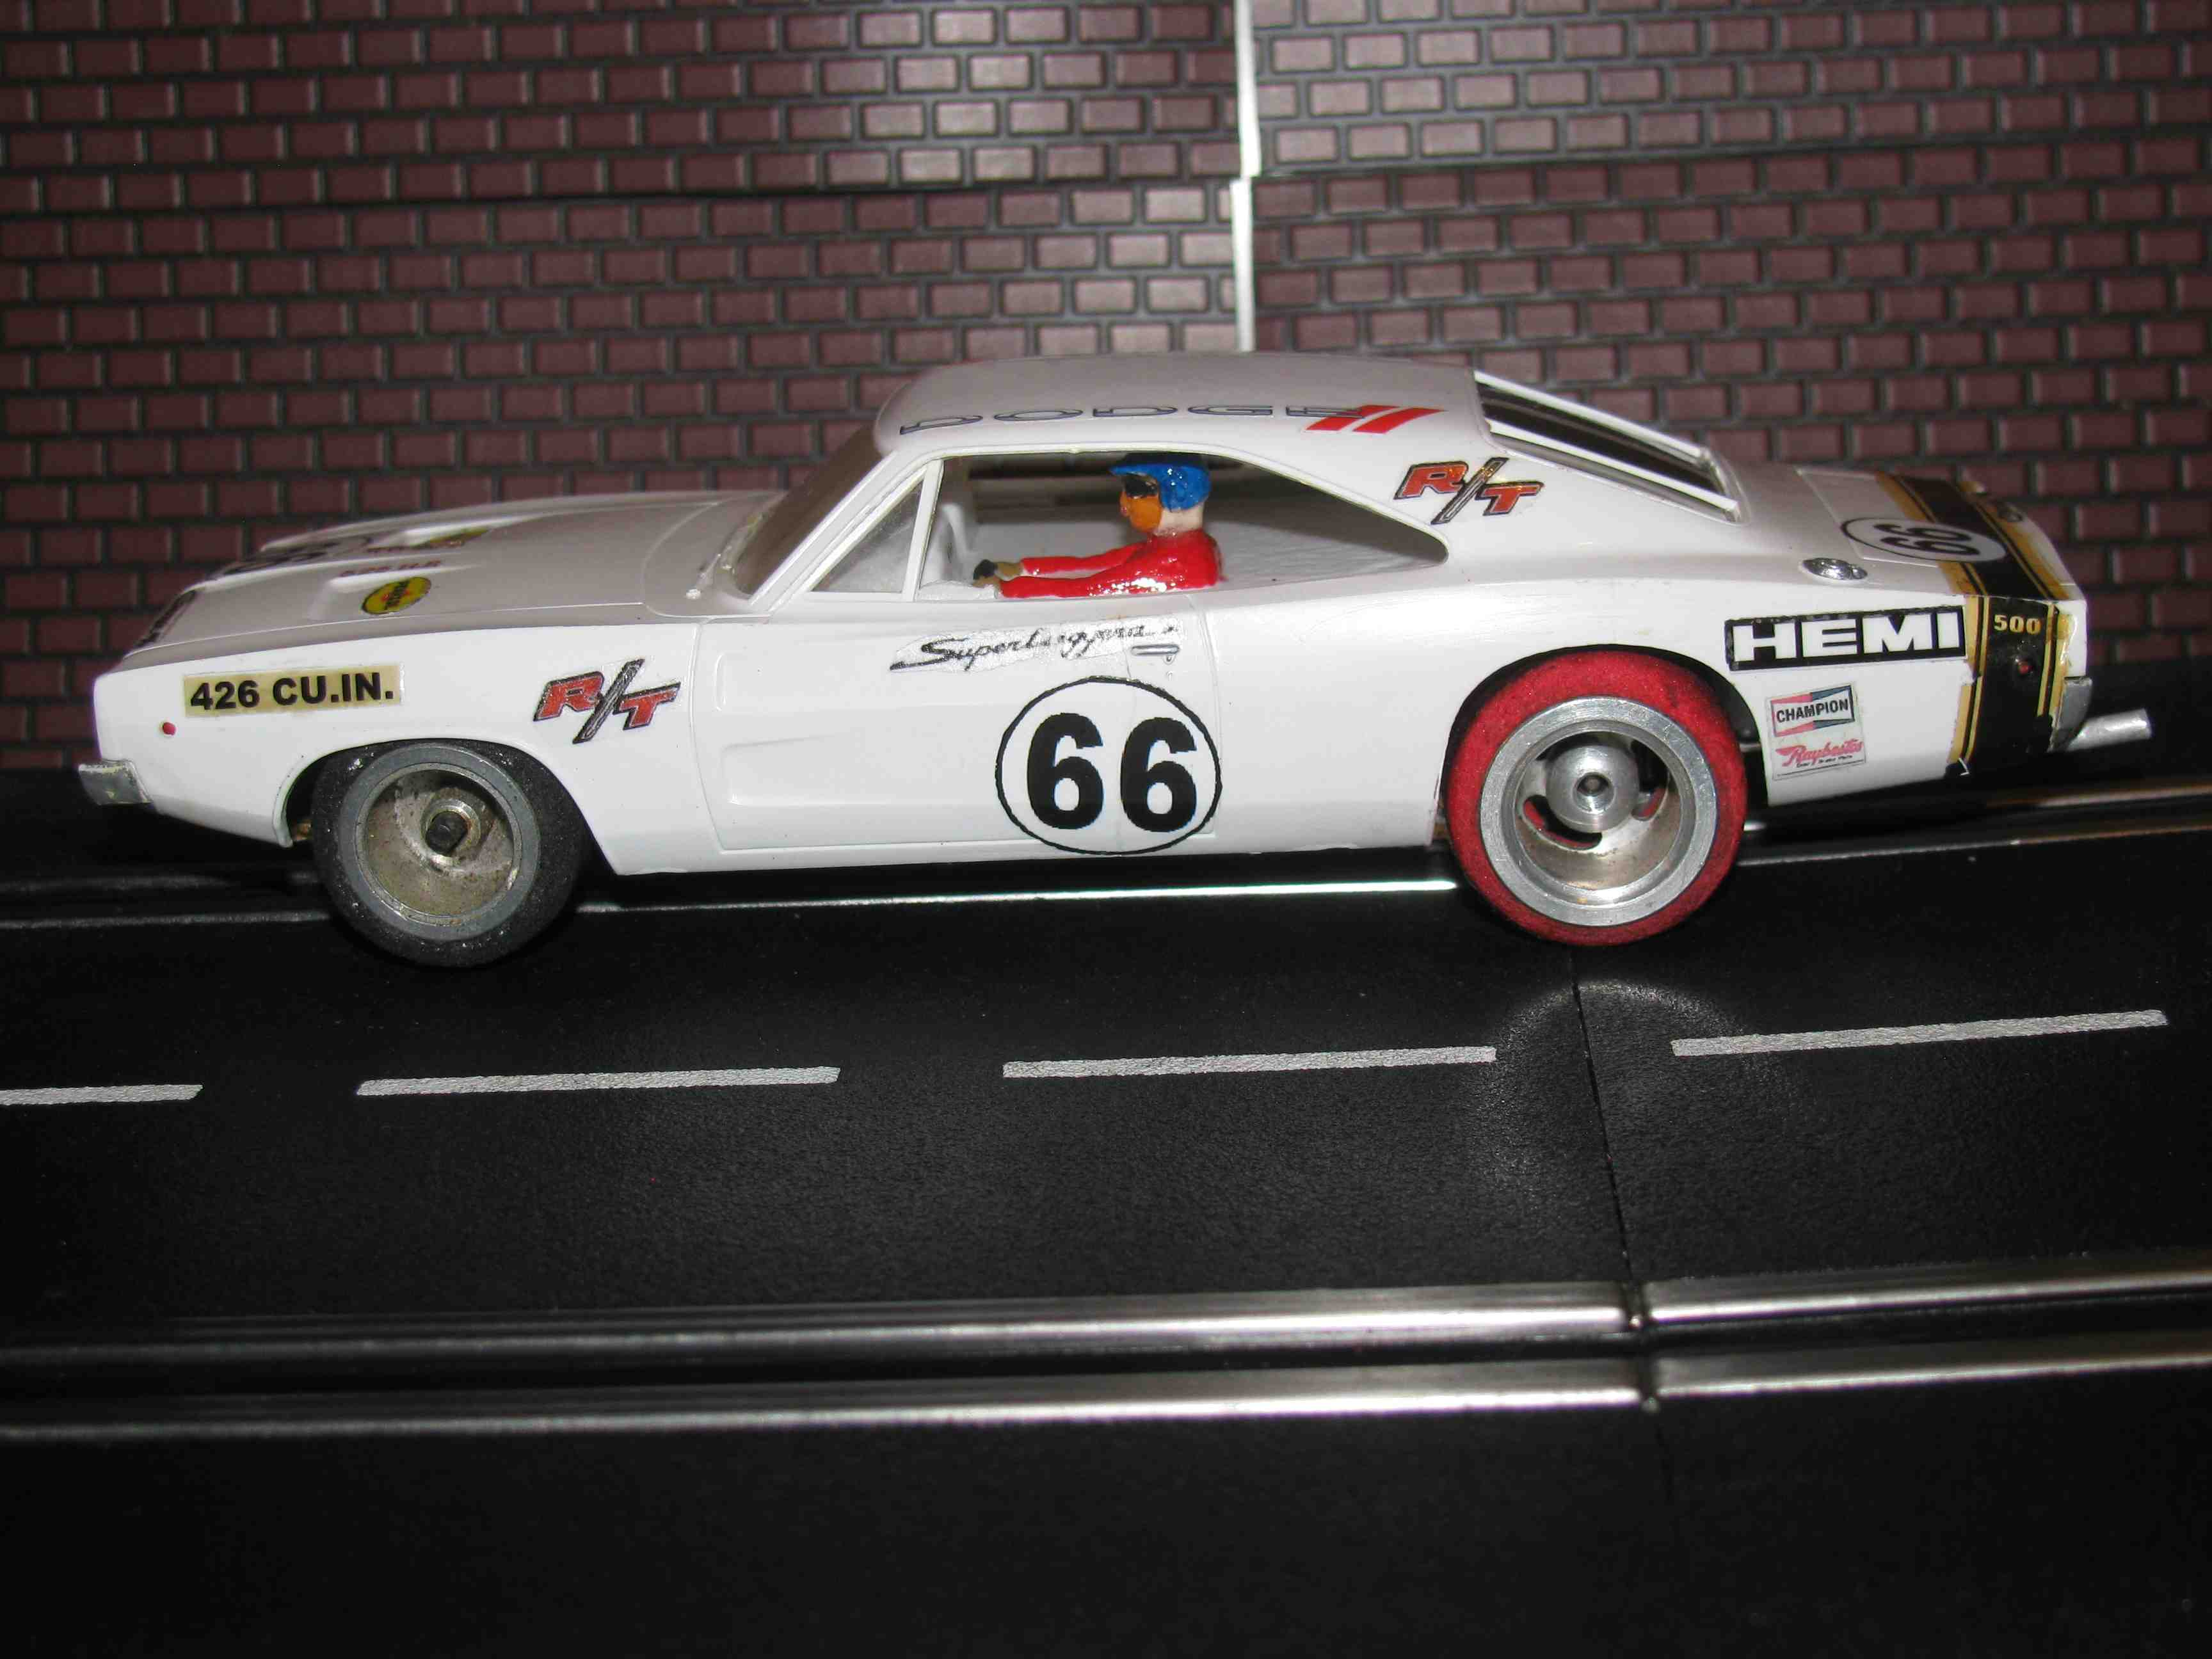 * SOLD * 1962 Dodge Charger RT 500 Slot Car 1/32 Scale Car #66